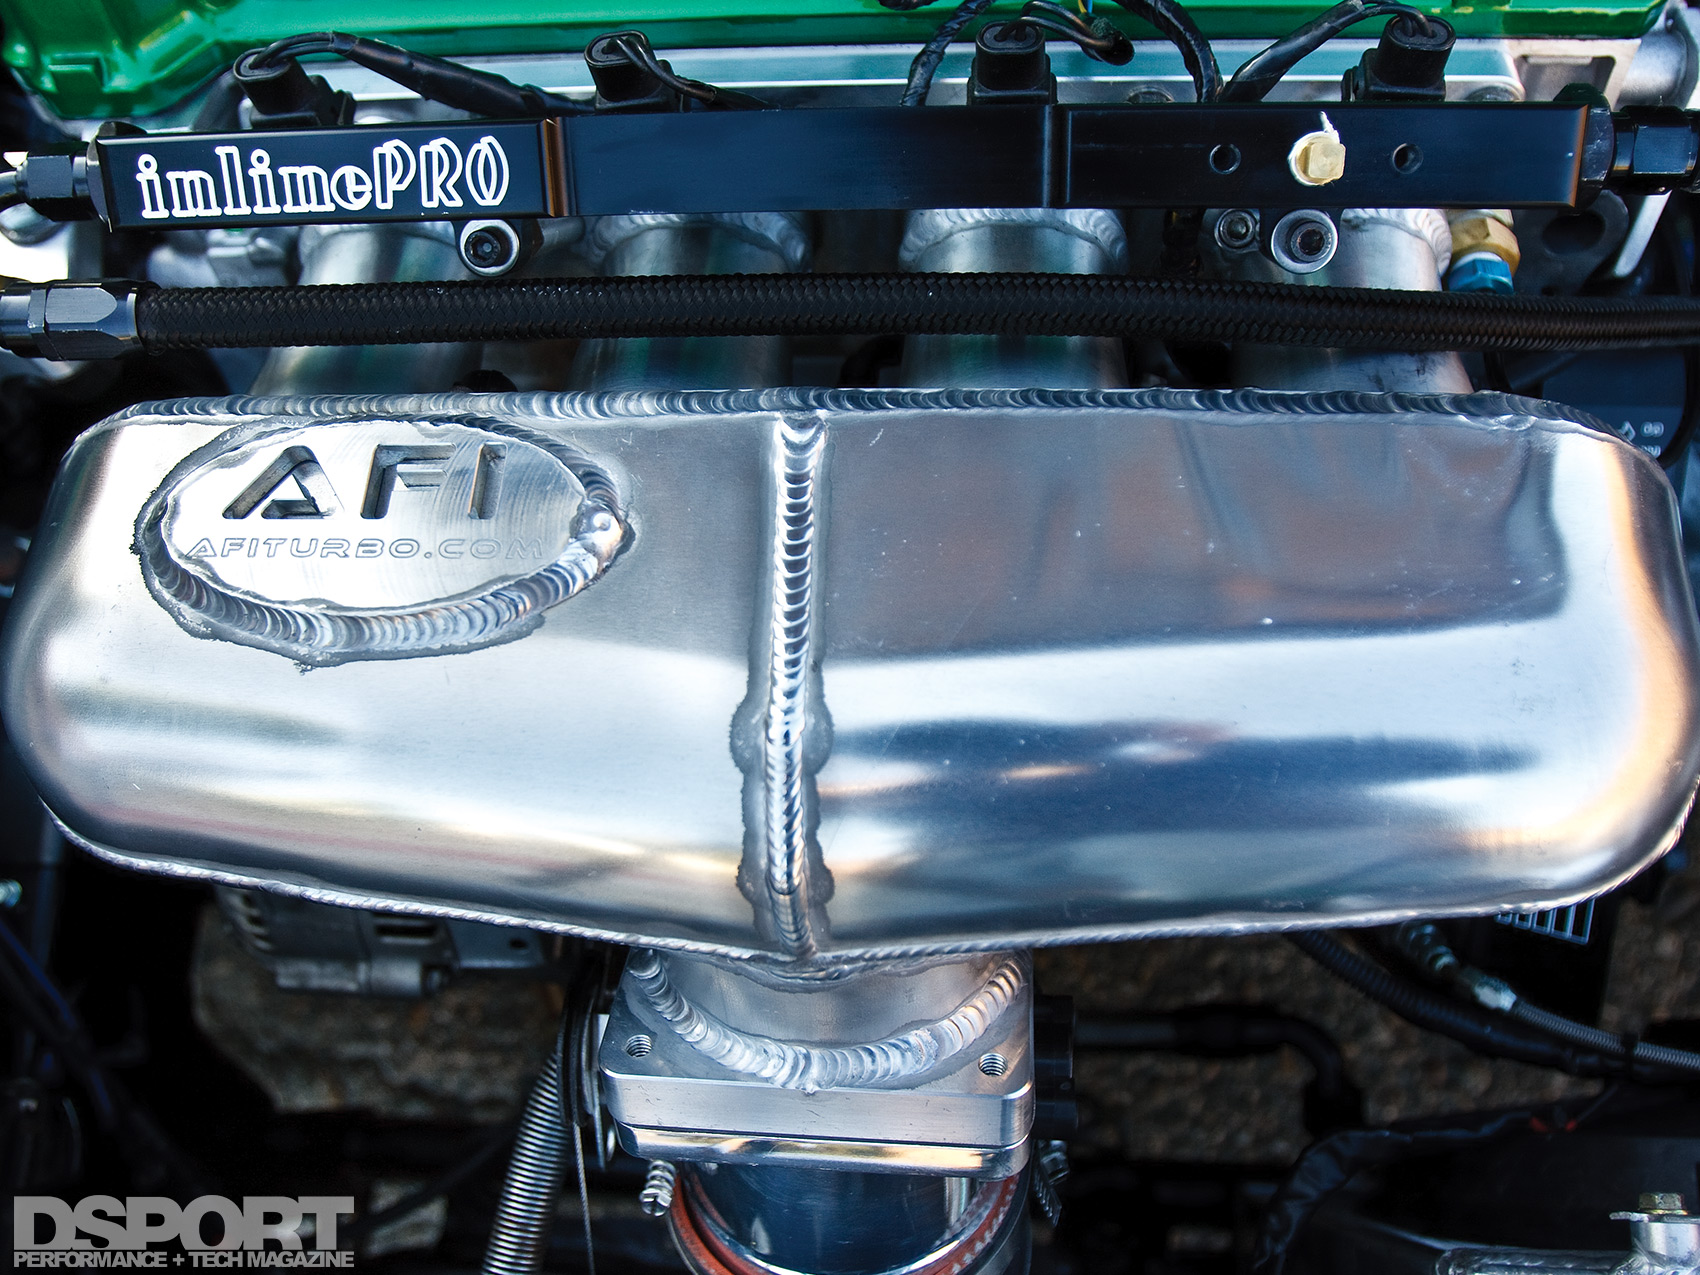 Intake Manifold 101: Ensuring the Cylinders are Working Their Best